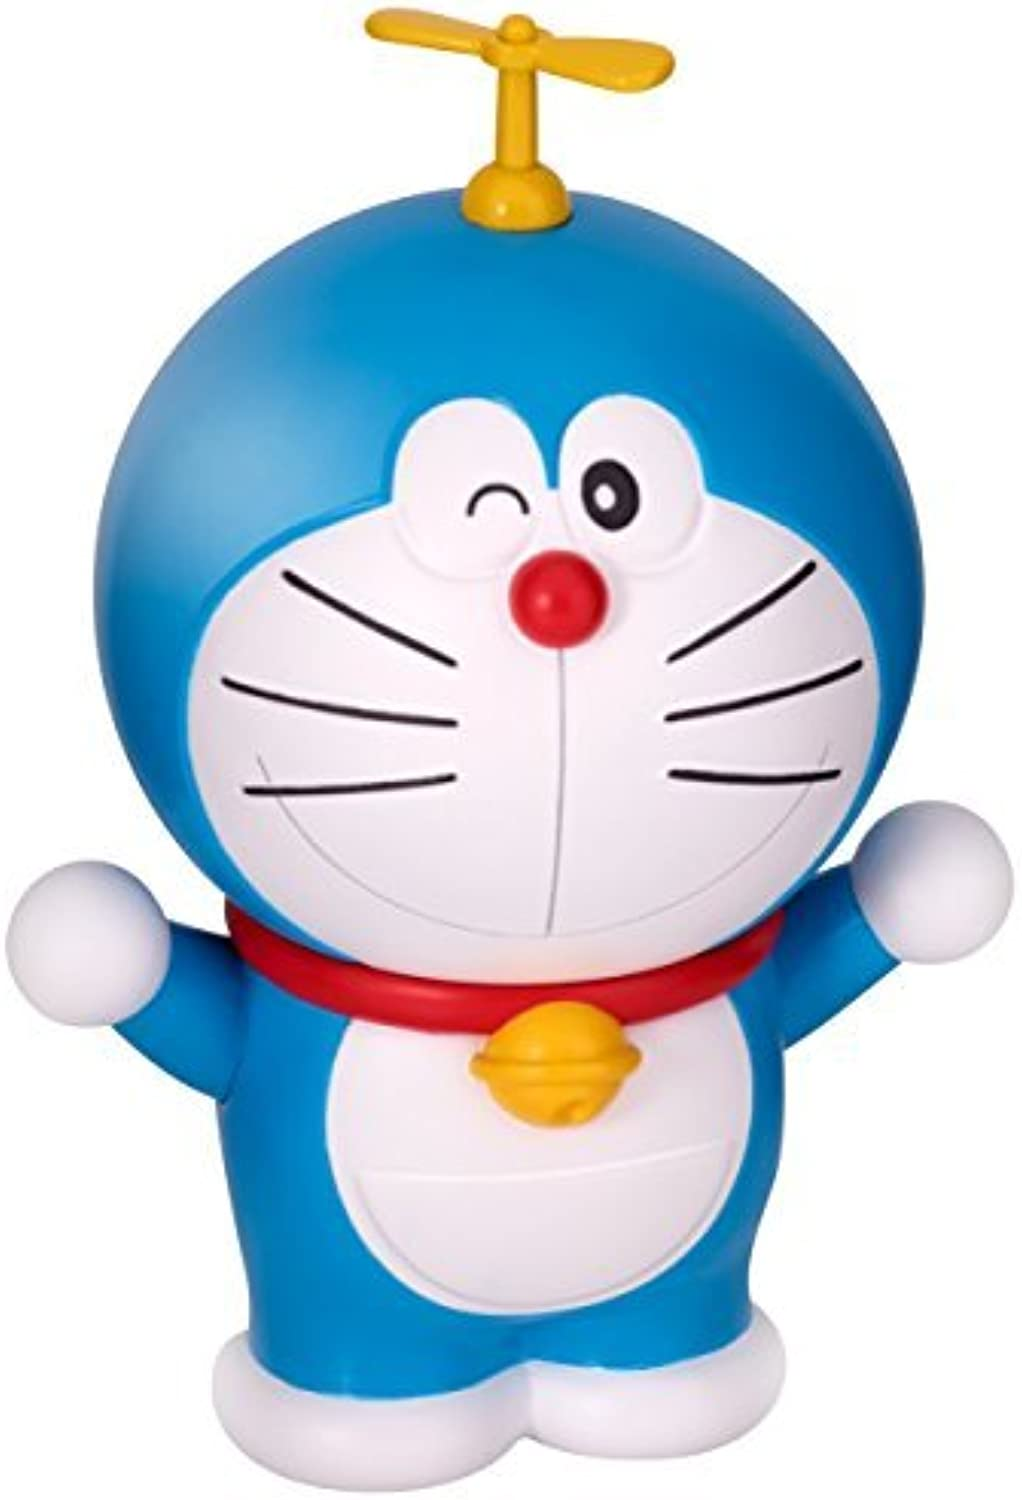 Doraemon with Hopter 4 Vinyl Figure by Doraemon